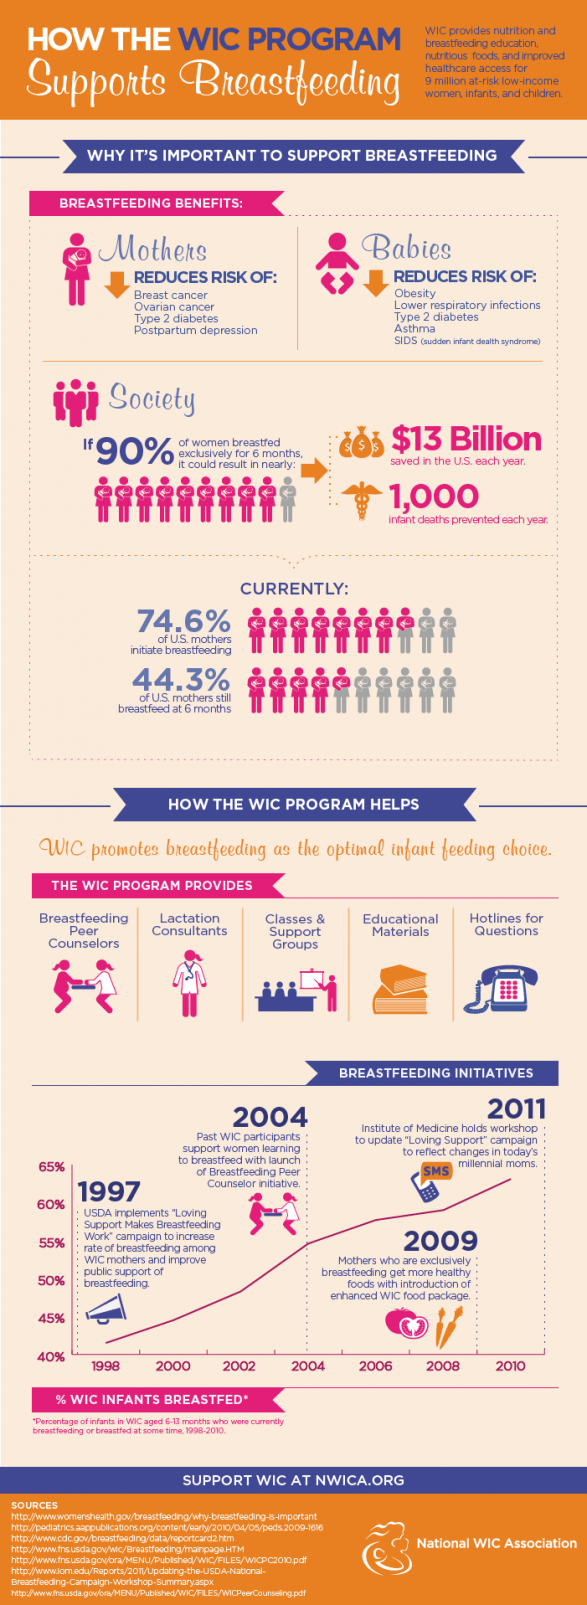 How the WIC Program Supports Breastfeeding